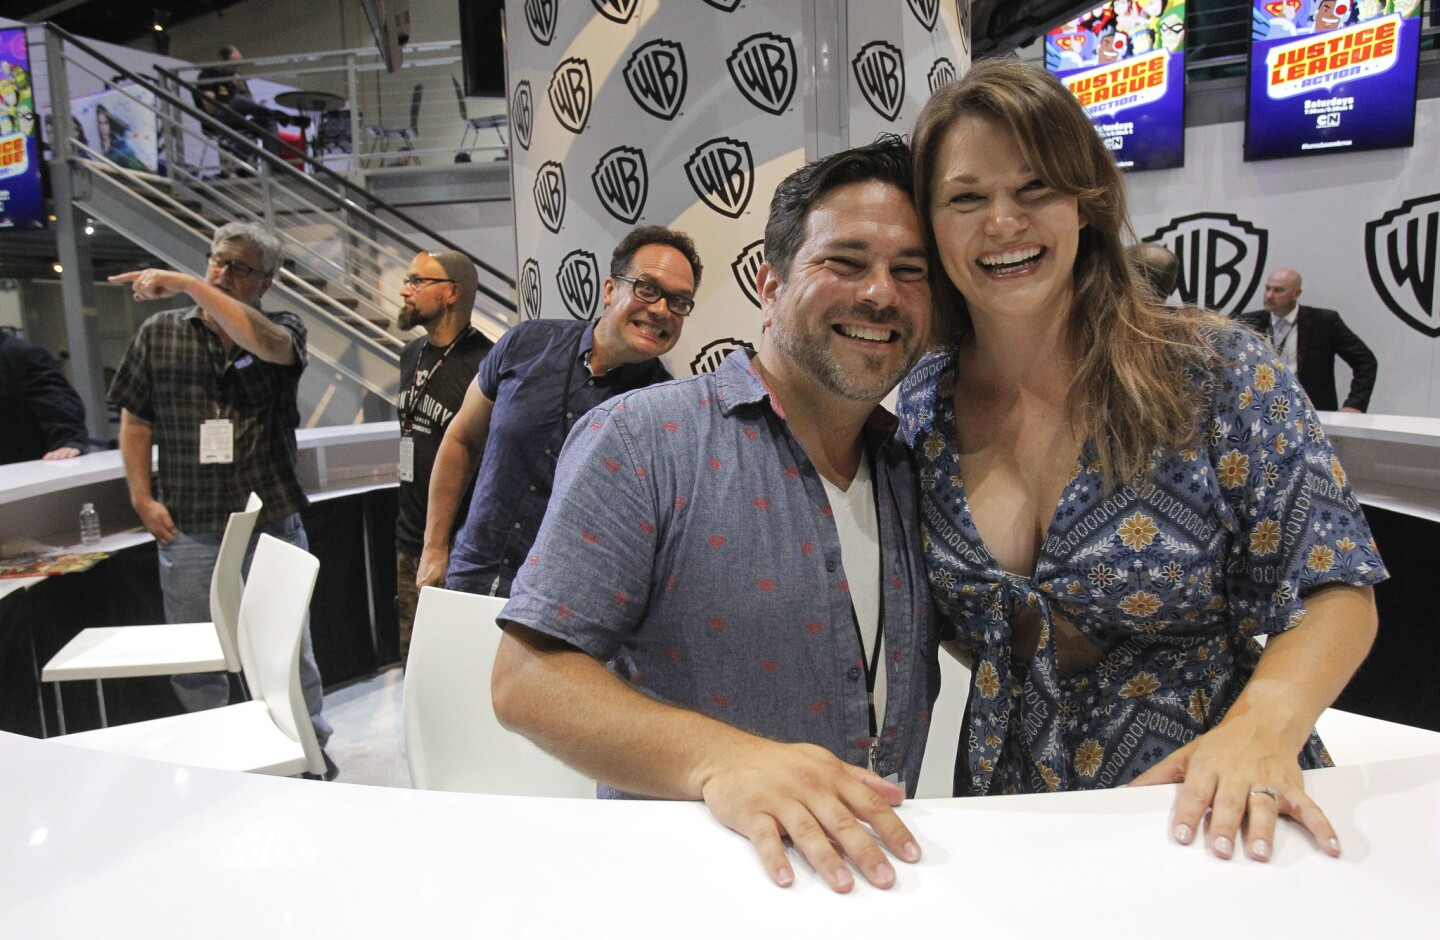 Voice of Wonder Woman Rachel Kimsey and Jason Lewis, voice of Superman, pose for a photo, with Diedrich Bader behind them, after they and other actors with Justice League Action signed autographs at the Warner Brothers booth.